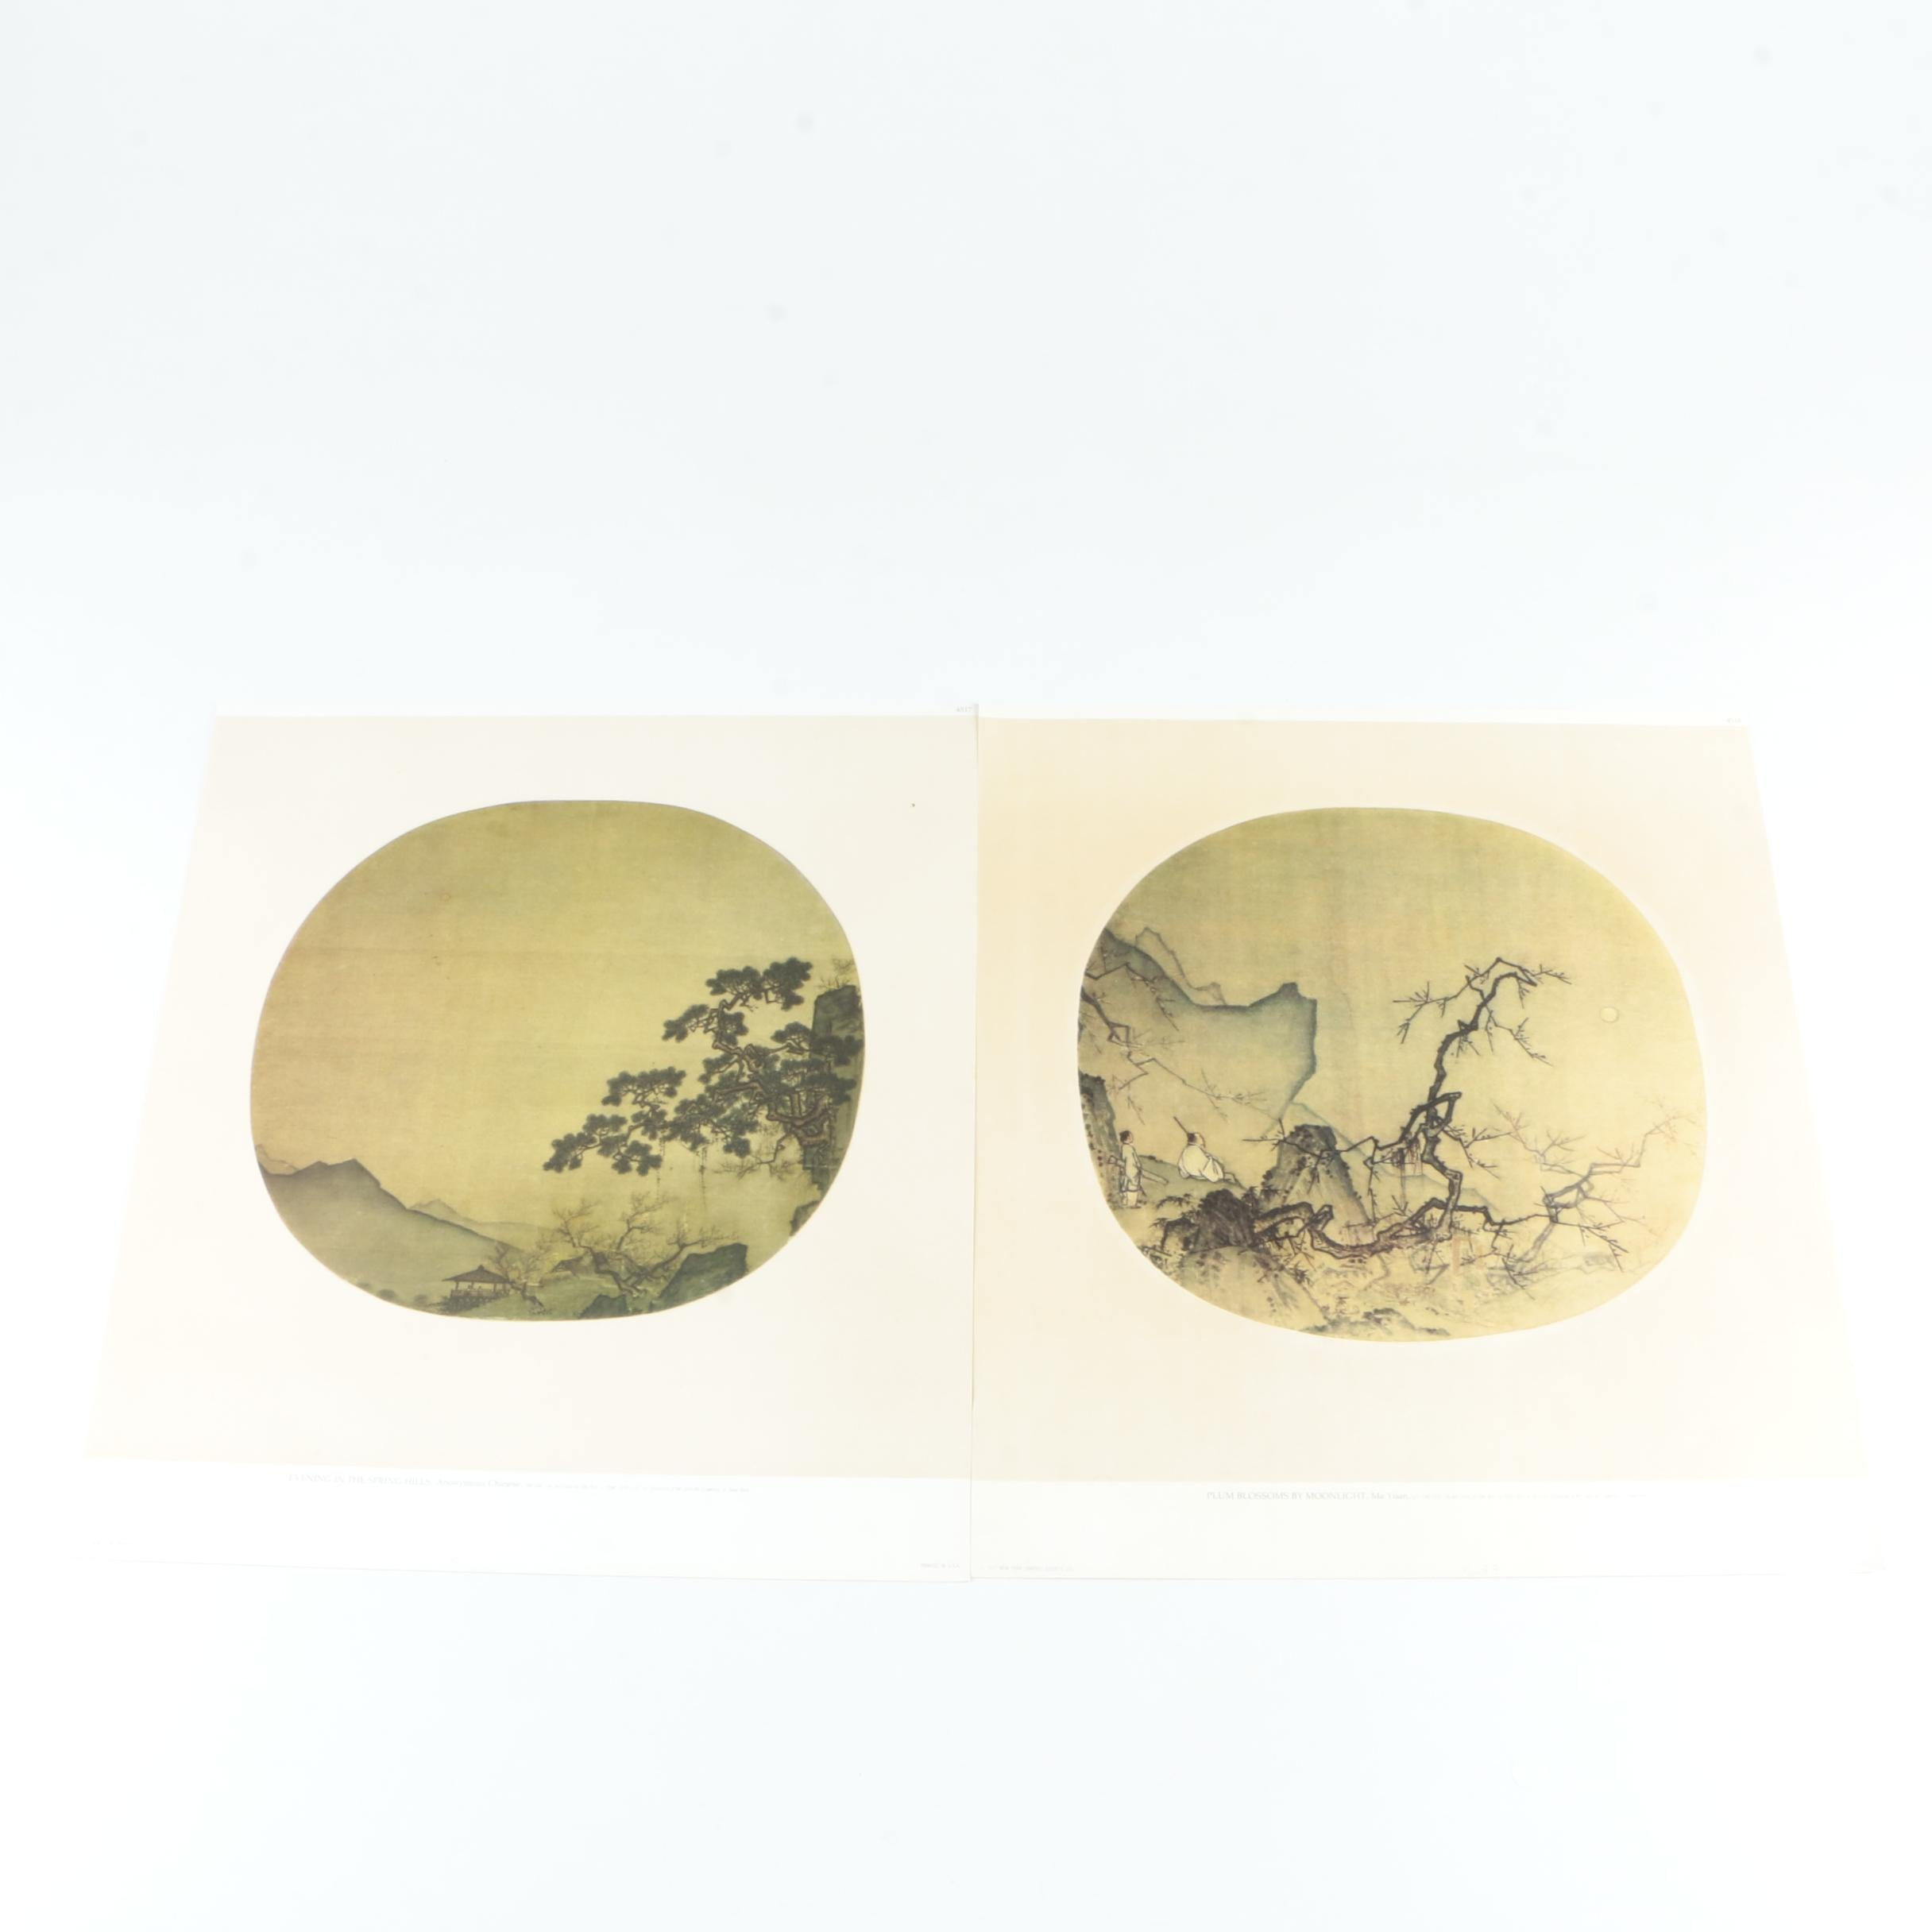 Pair of Chinese Giclées on Paper